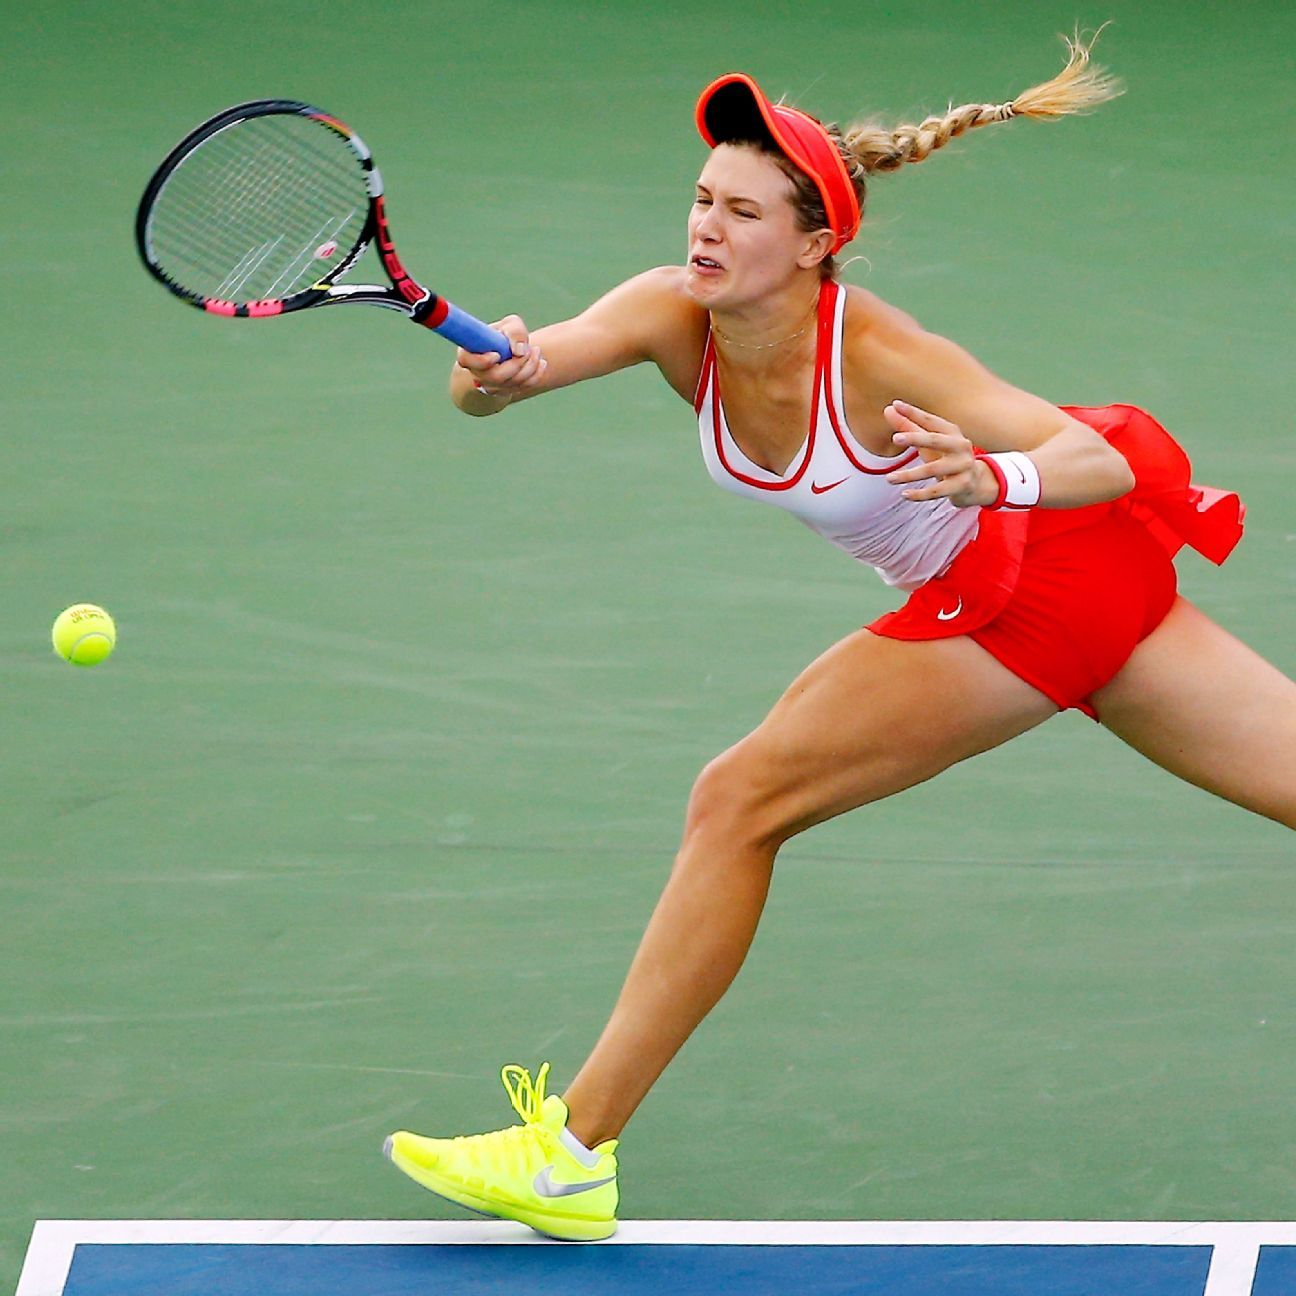 Eugenie Bouchard Out Of US Open Doubles With Head Injury